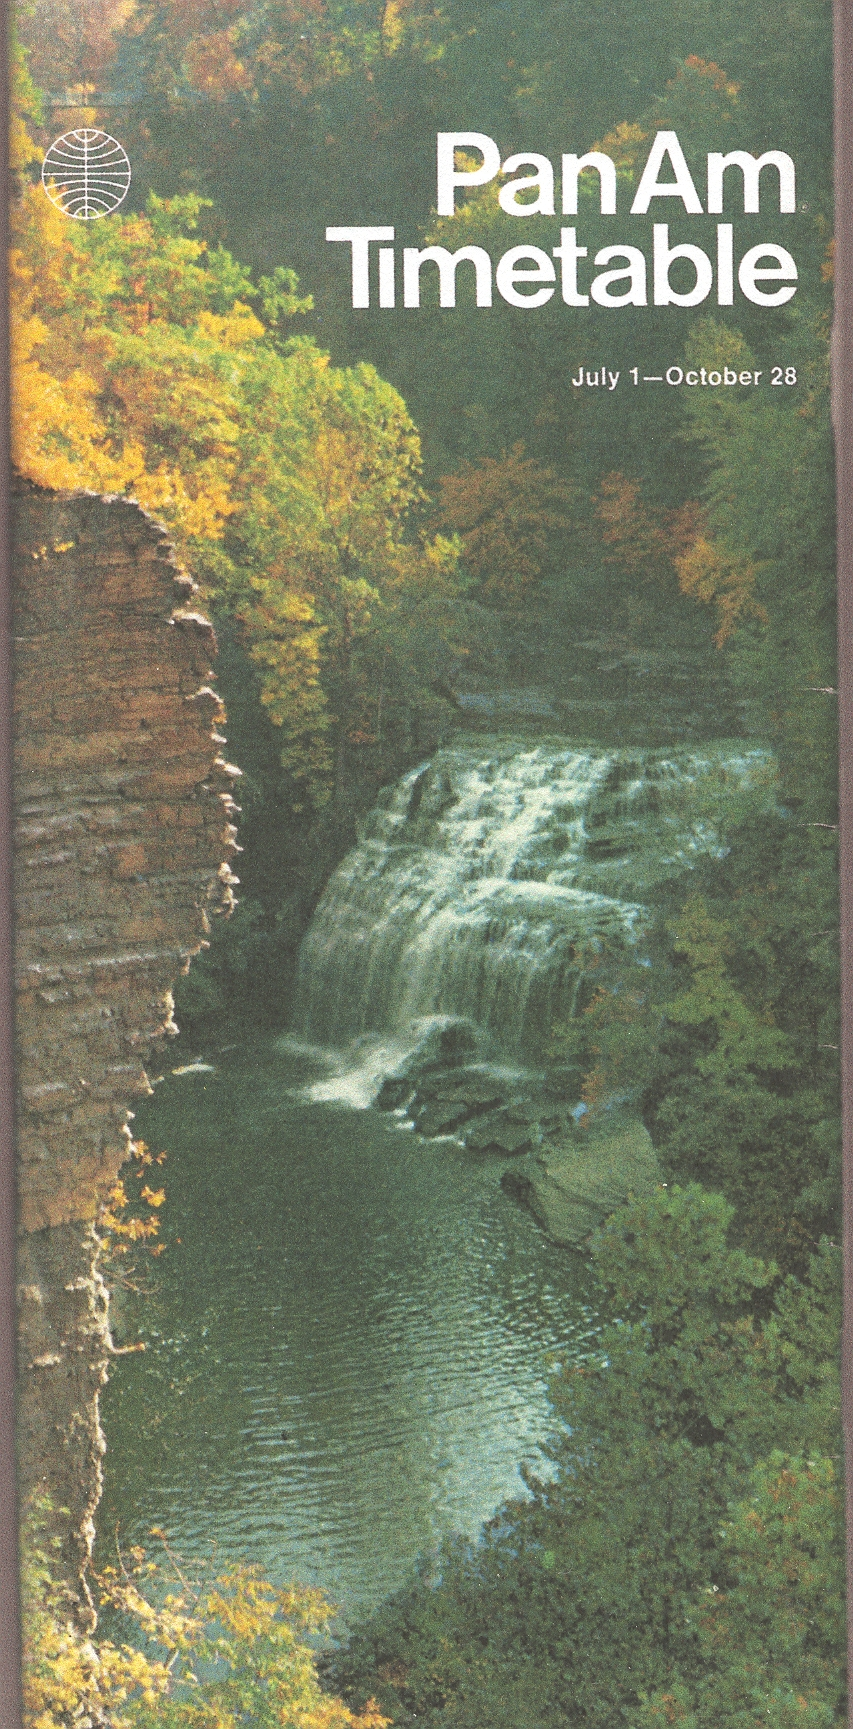 A water scene from New York State was featured on the Jul 01 - Oct 28, 1972 Pan Am timetable in the Helvetica style.